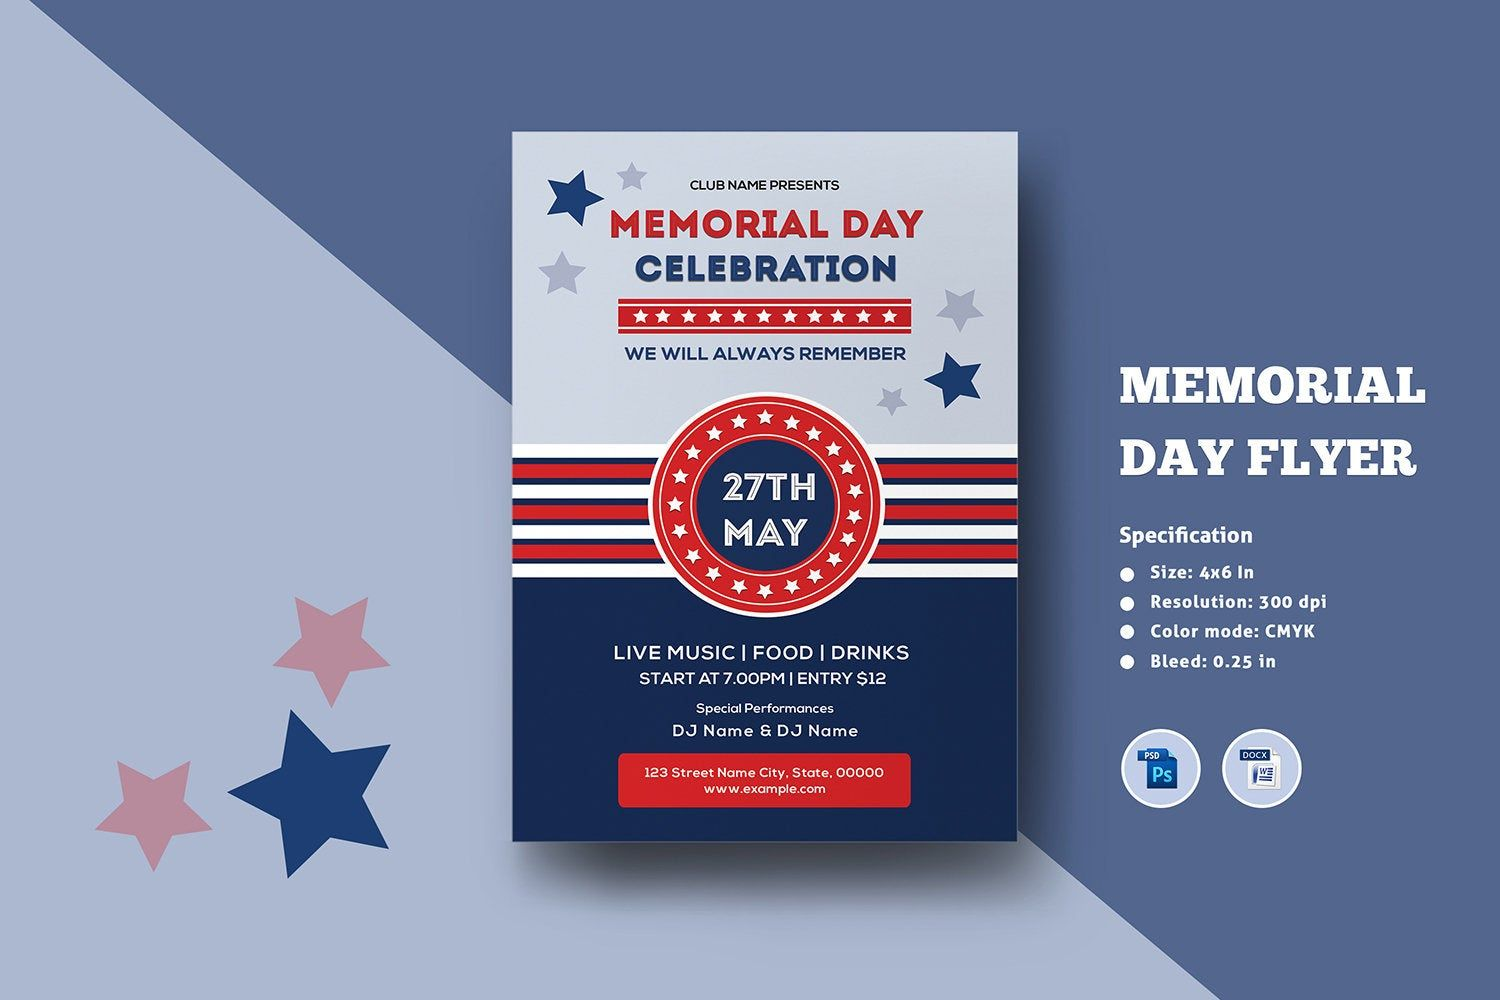 Us Memorial Day Flyer Template Memorial Day Celebration Etsy Memorial Day Celebrations Memorial Day Flyer